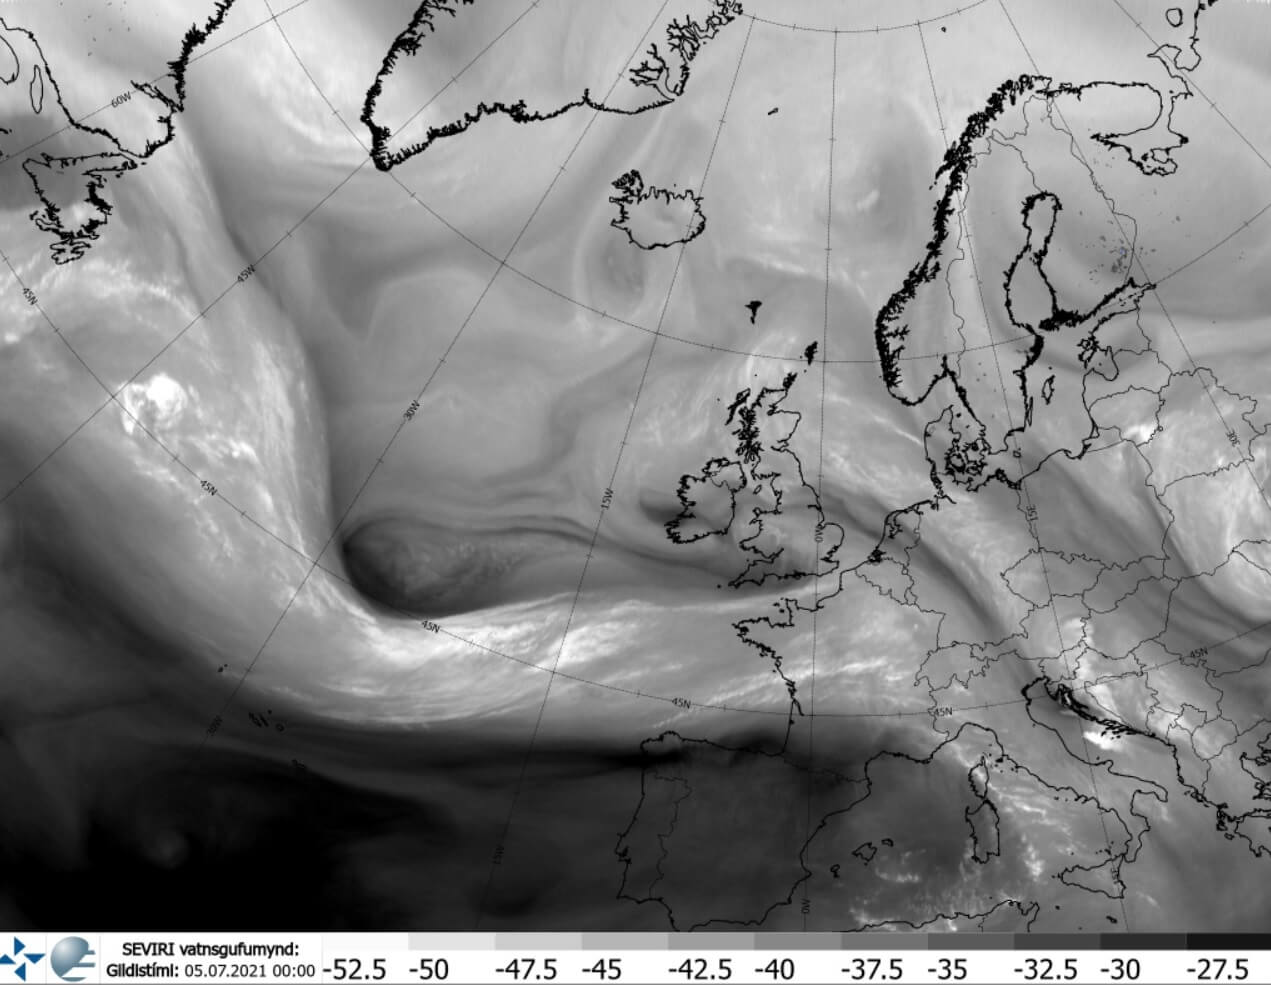 north-atlantic-extratropical-storm-england-english-channel-france-water-vapor-satellite